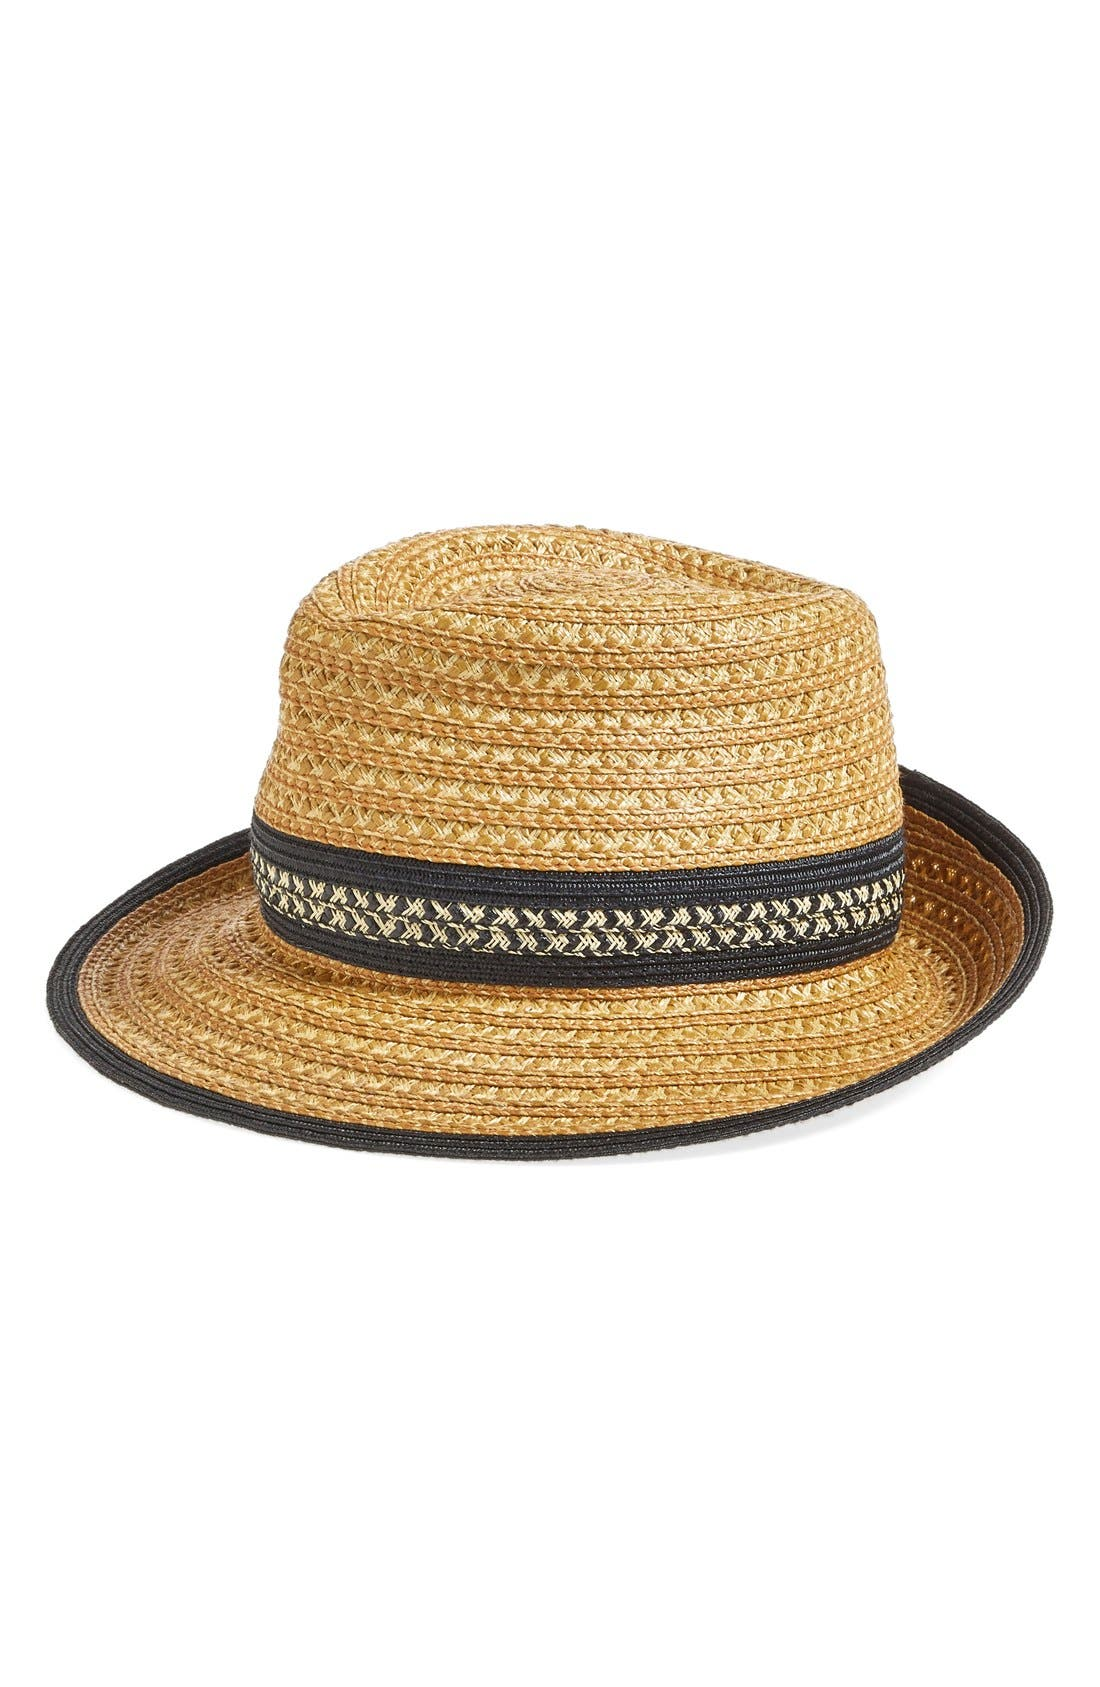 Squishee<sup>®</sup> Straw Fedora,                             Main thumbnail 1, color,                             252